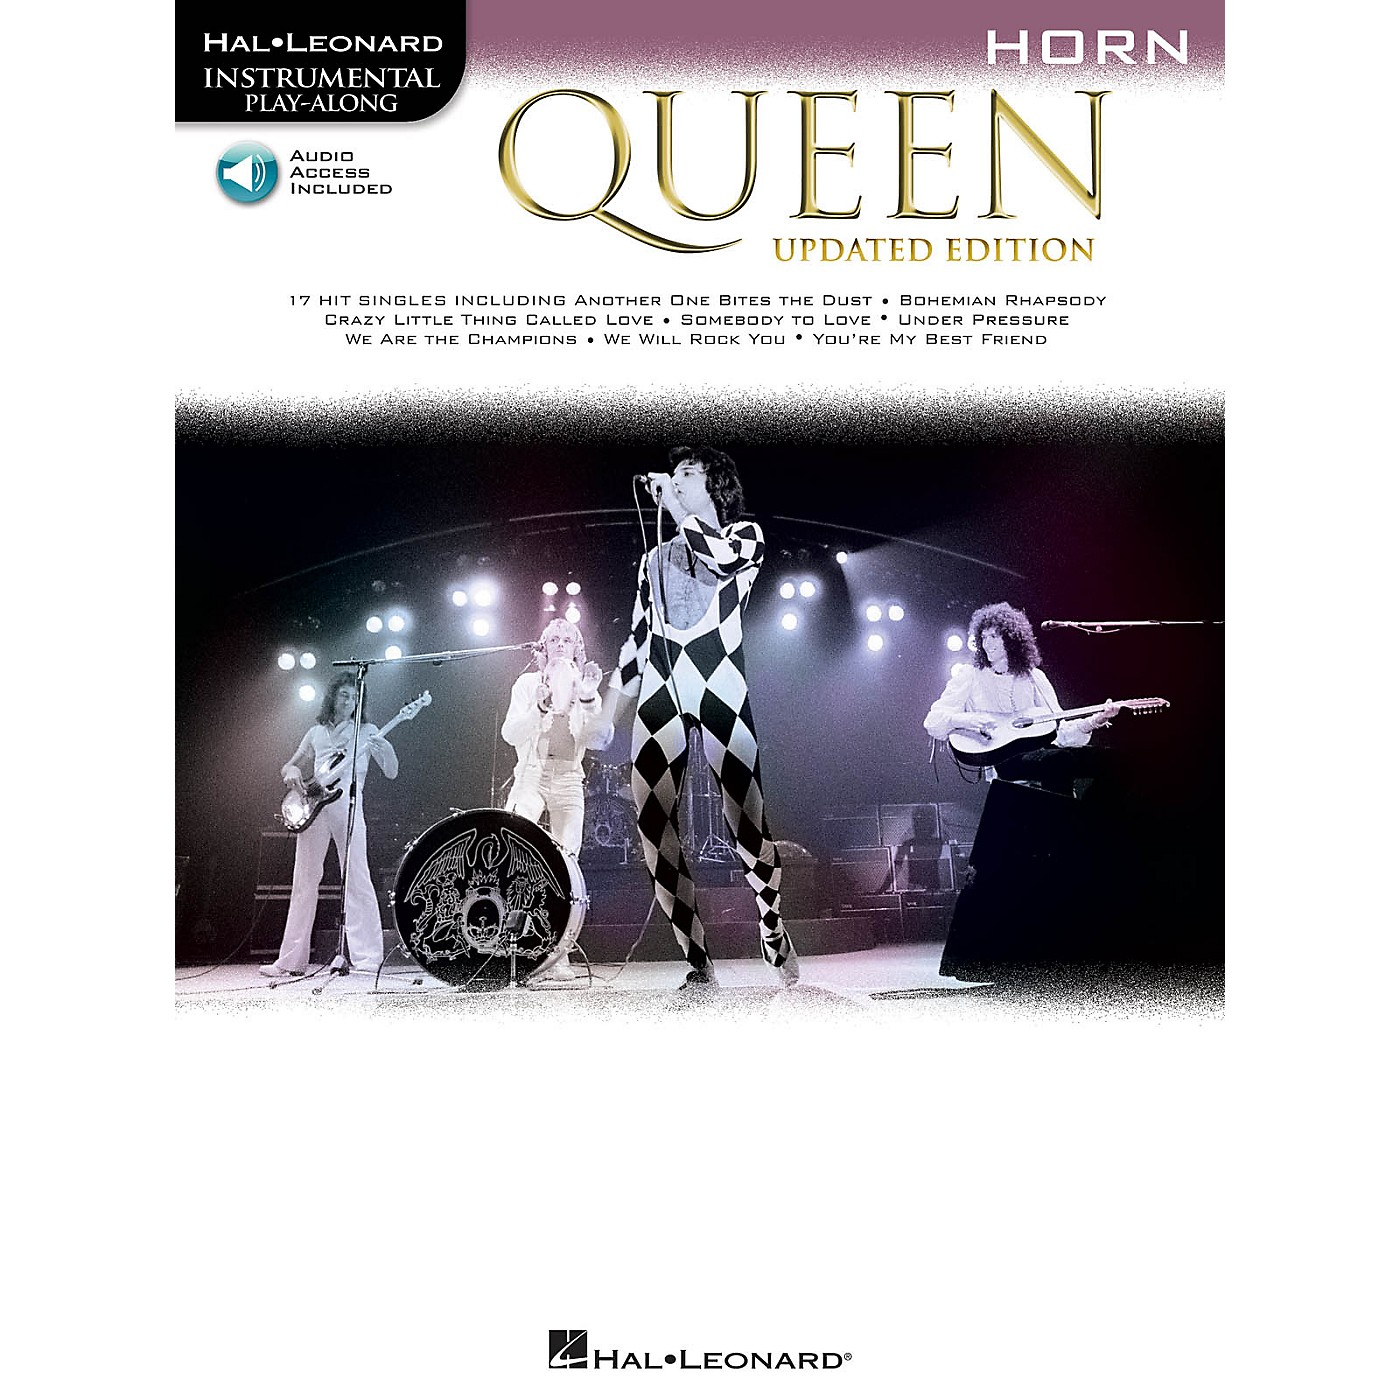 Hal Leonard Queen - Updated Edition Horn Instrumental Play-Along Songbook Book/Audio Online thumbnail